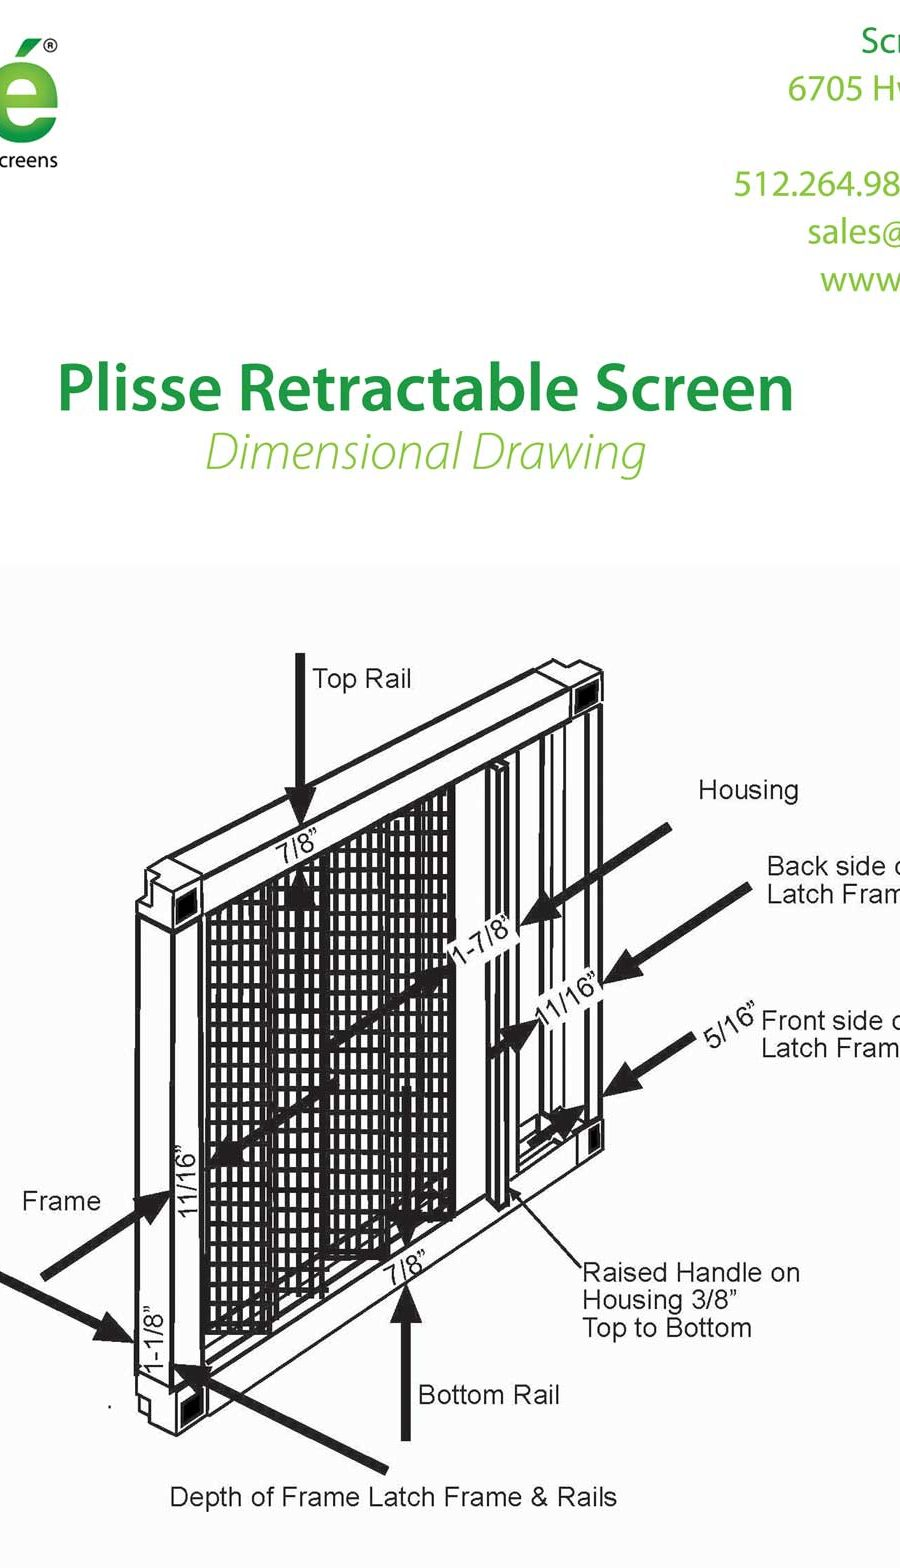 Plisse Retractable Screen Dimensional Drawing